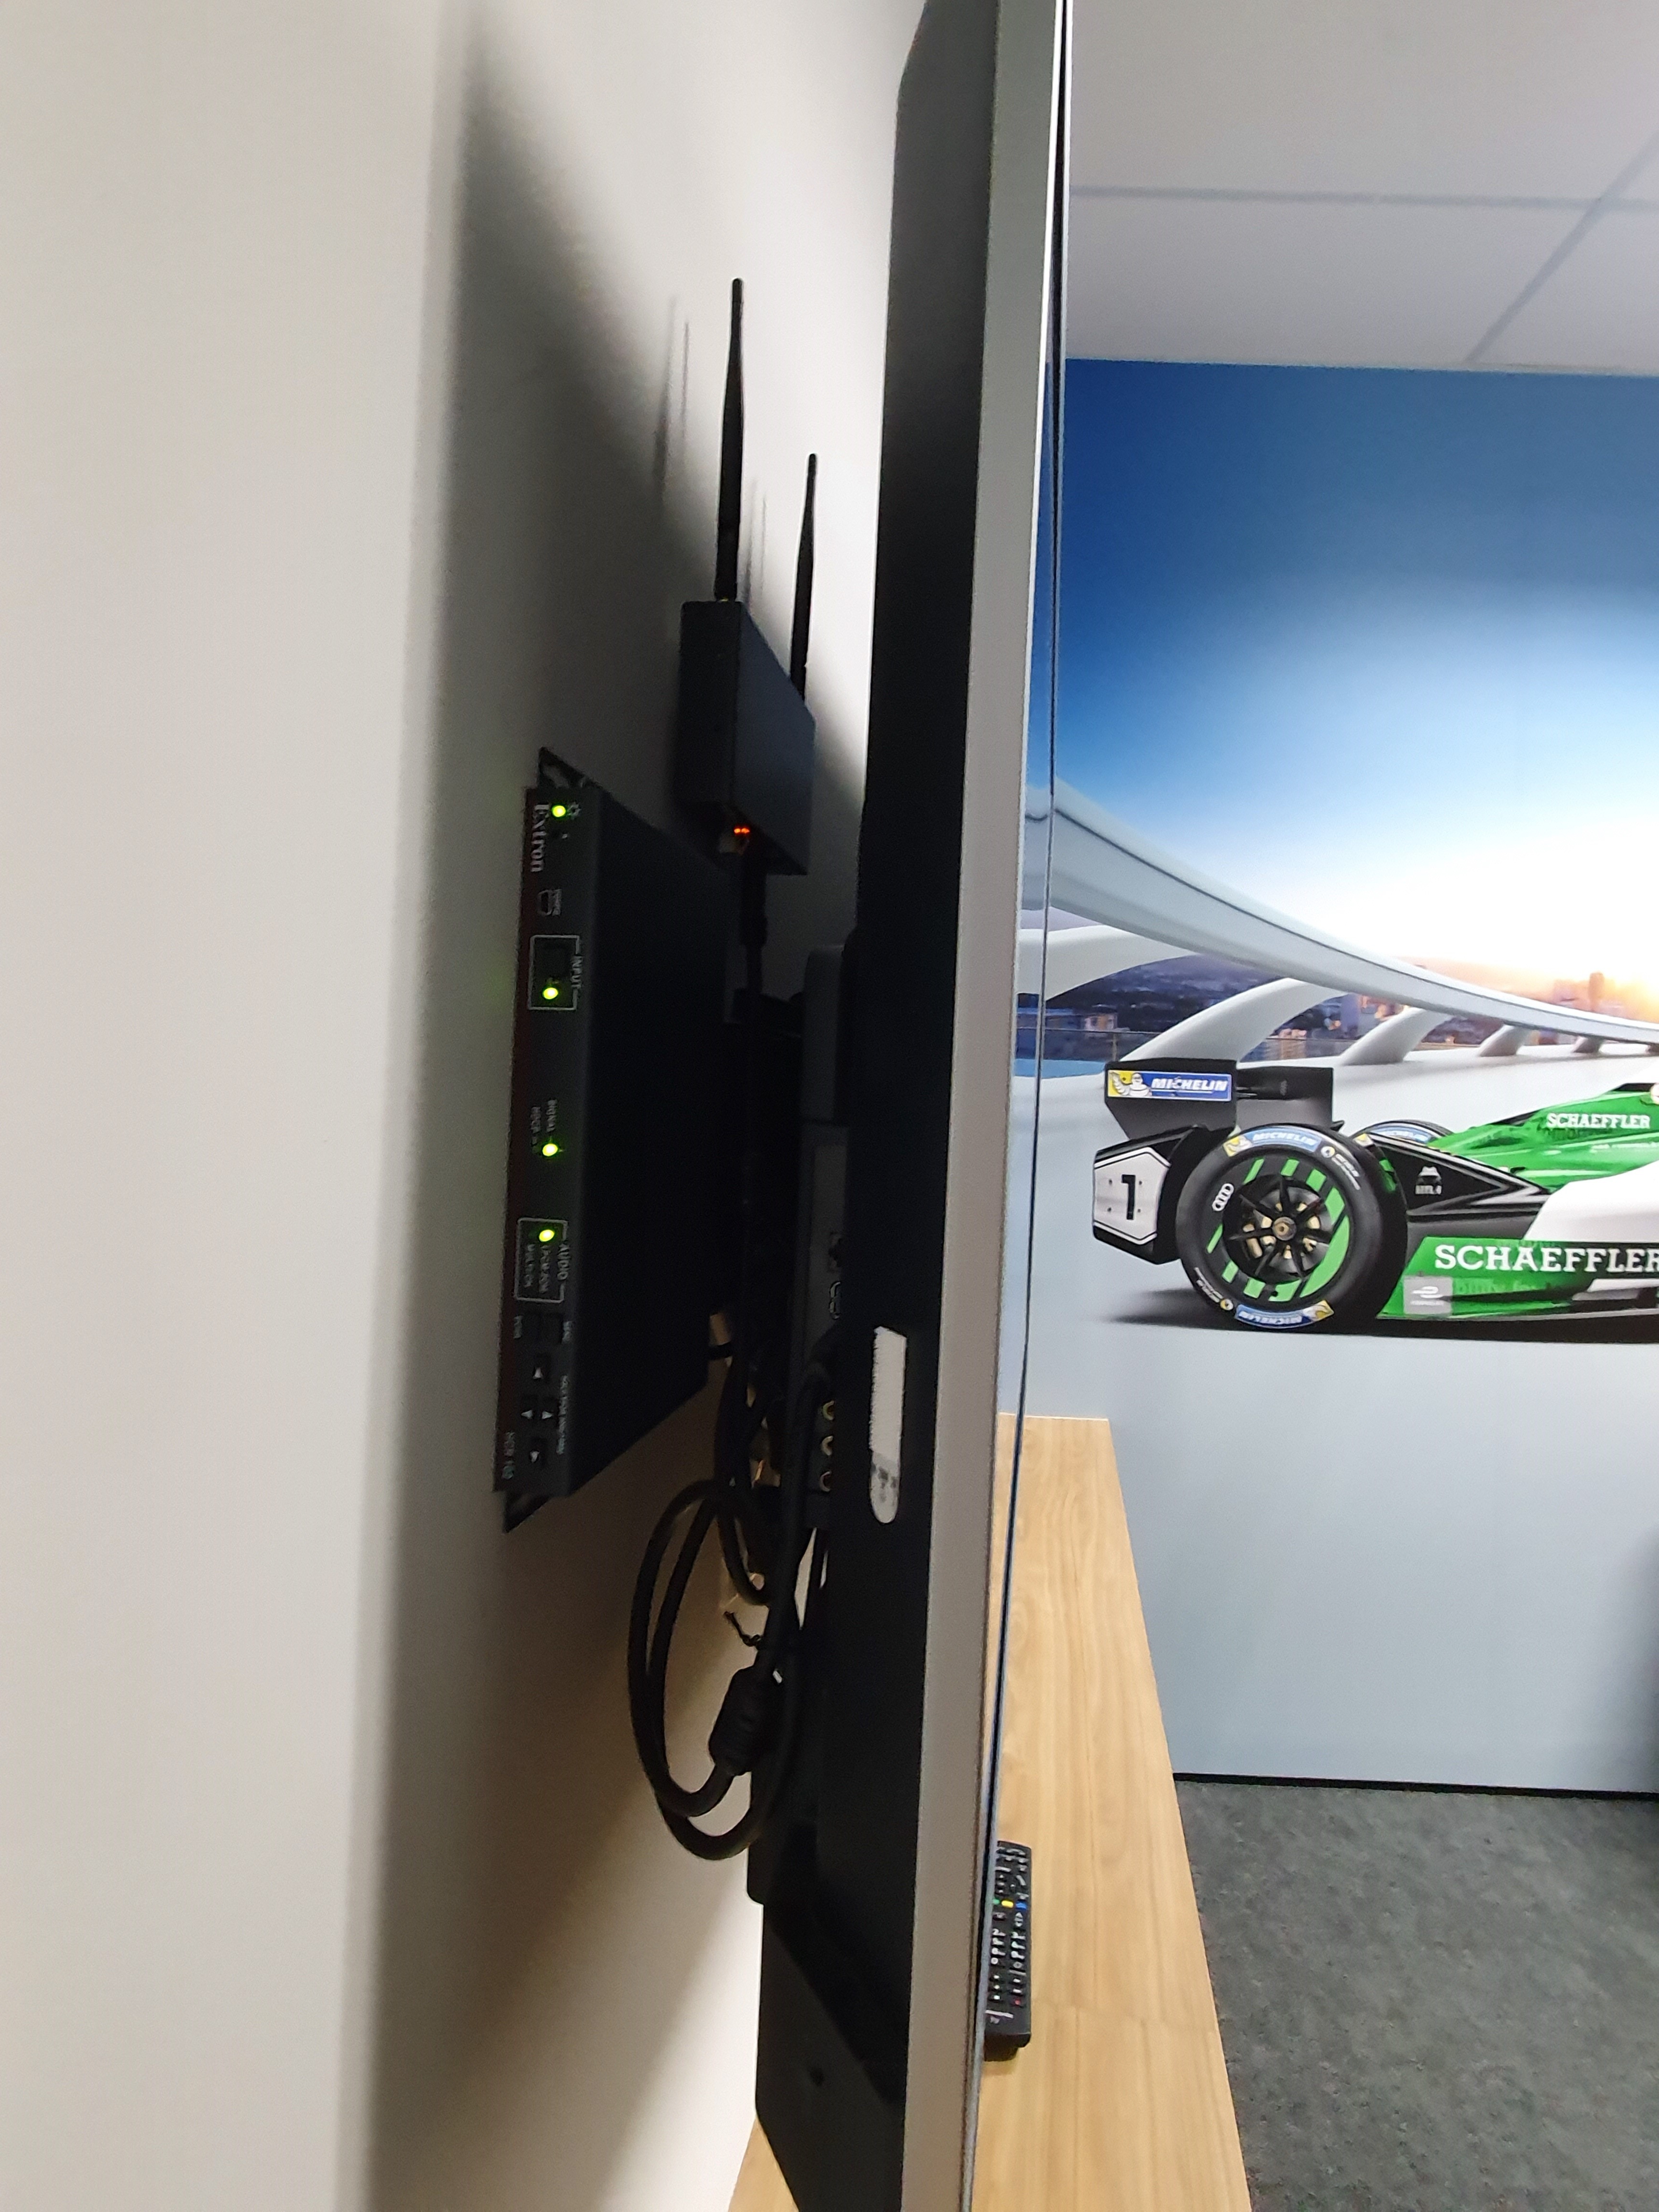 To achieve a sleek and modern environment in board rooms, auditoriums, and think tanks, the low-profile Extron HC 404 collaboration receiver and ShareLink wireless gateway are installed behind the flat panel display.